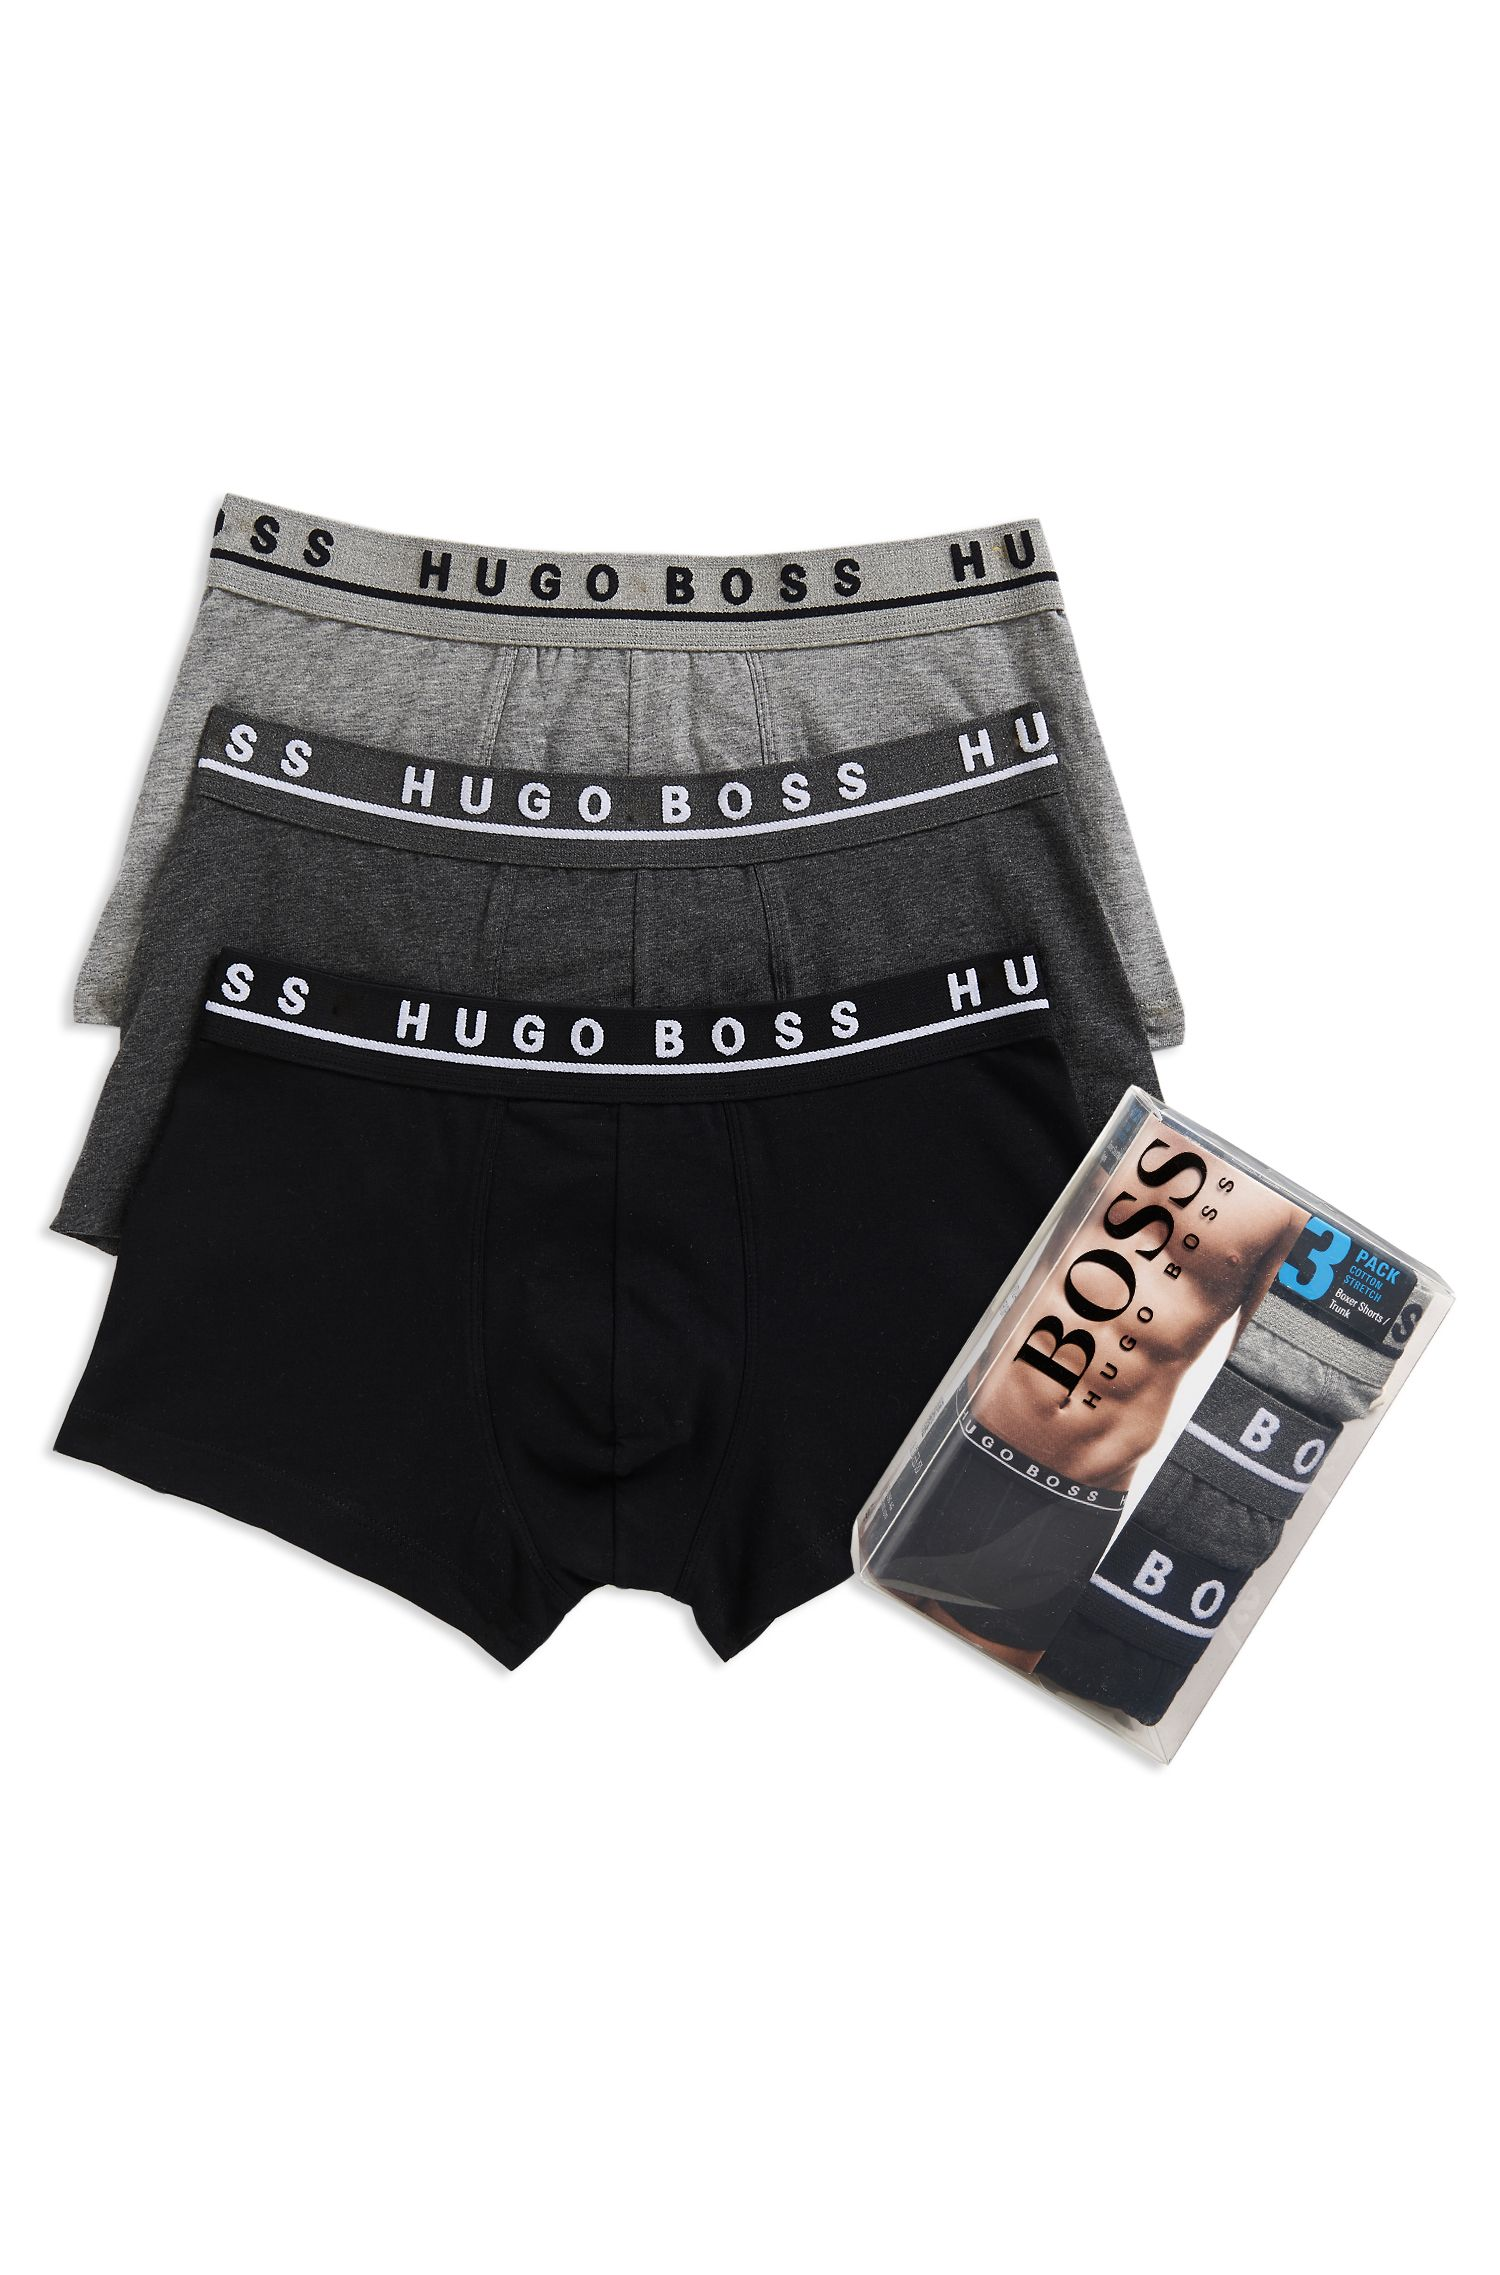 'Trunk' | Stretch Cotton Trunk, 3-Pack